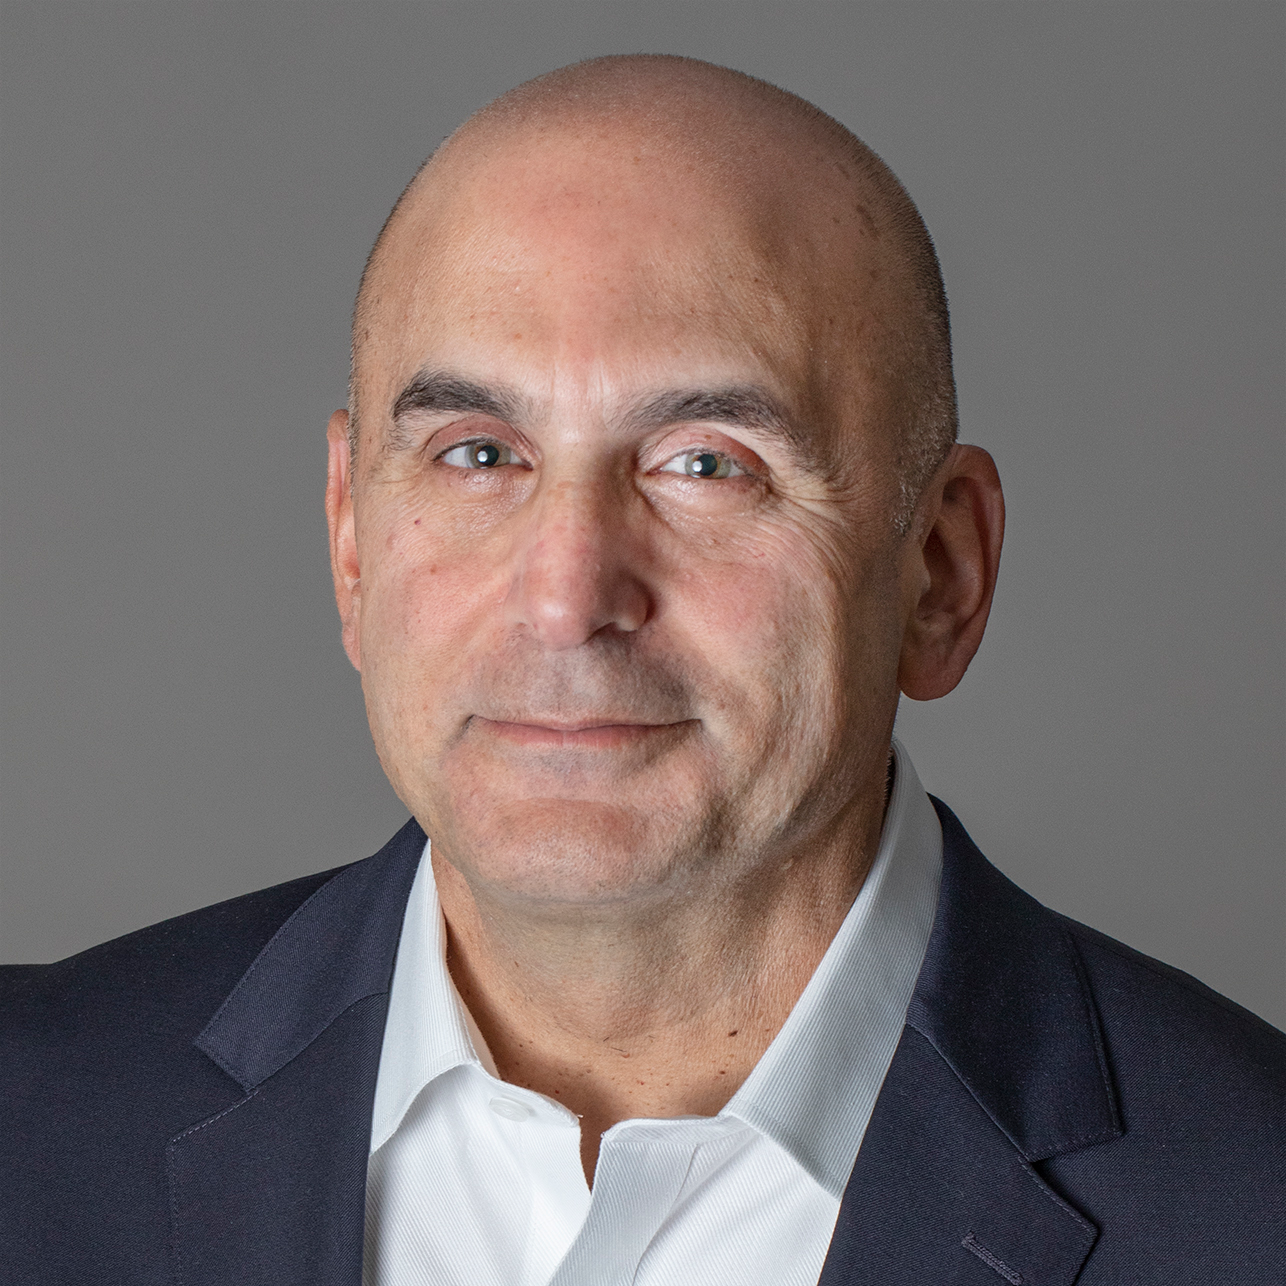 Gus Bozzo - Executive Vice President, National Accounts of Breakthru Beverage Group